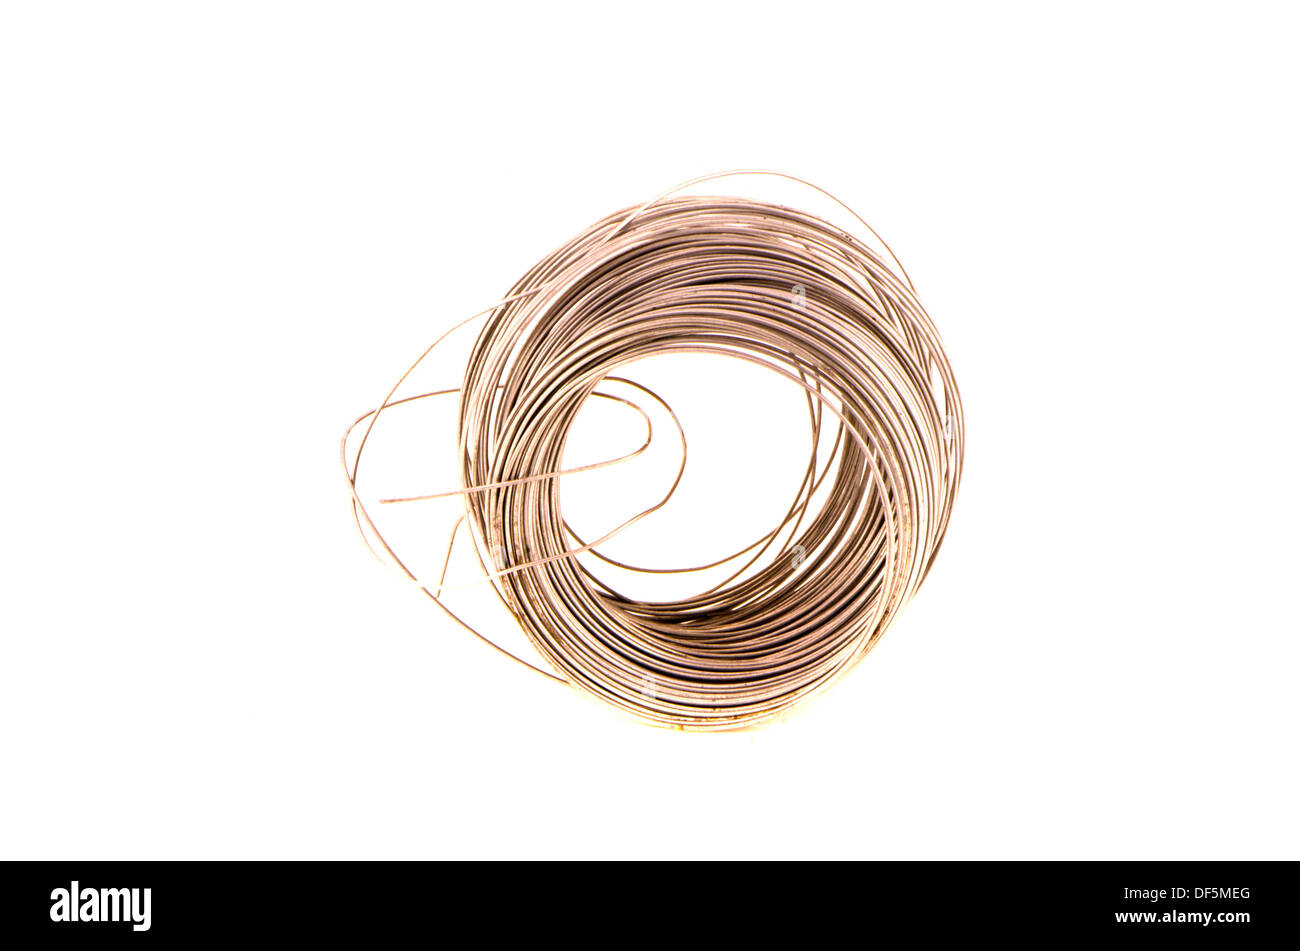 Thin Wire Stock Photos & Thin Wire Stock Images - Alamy